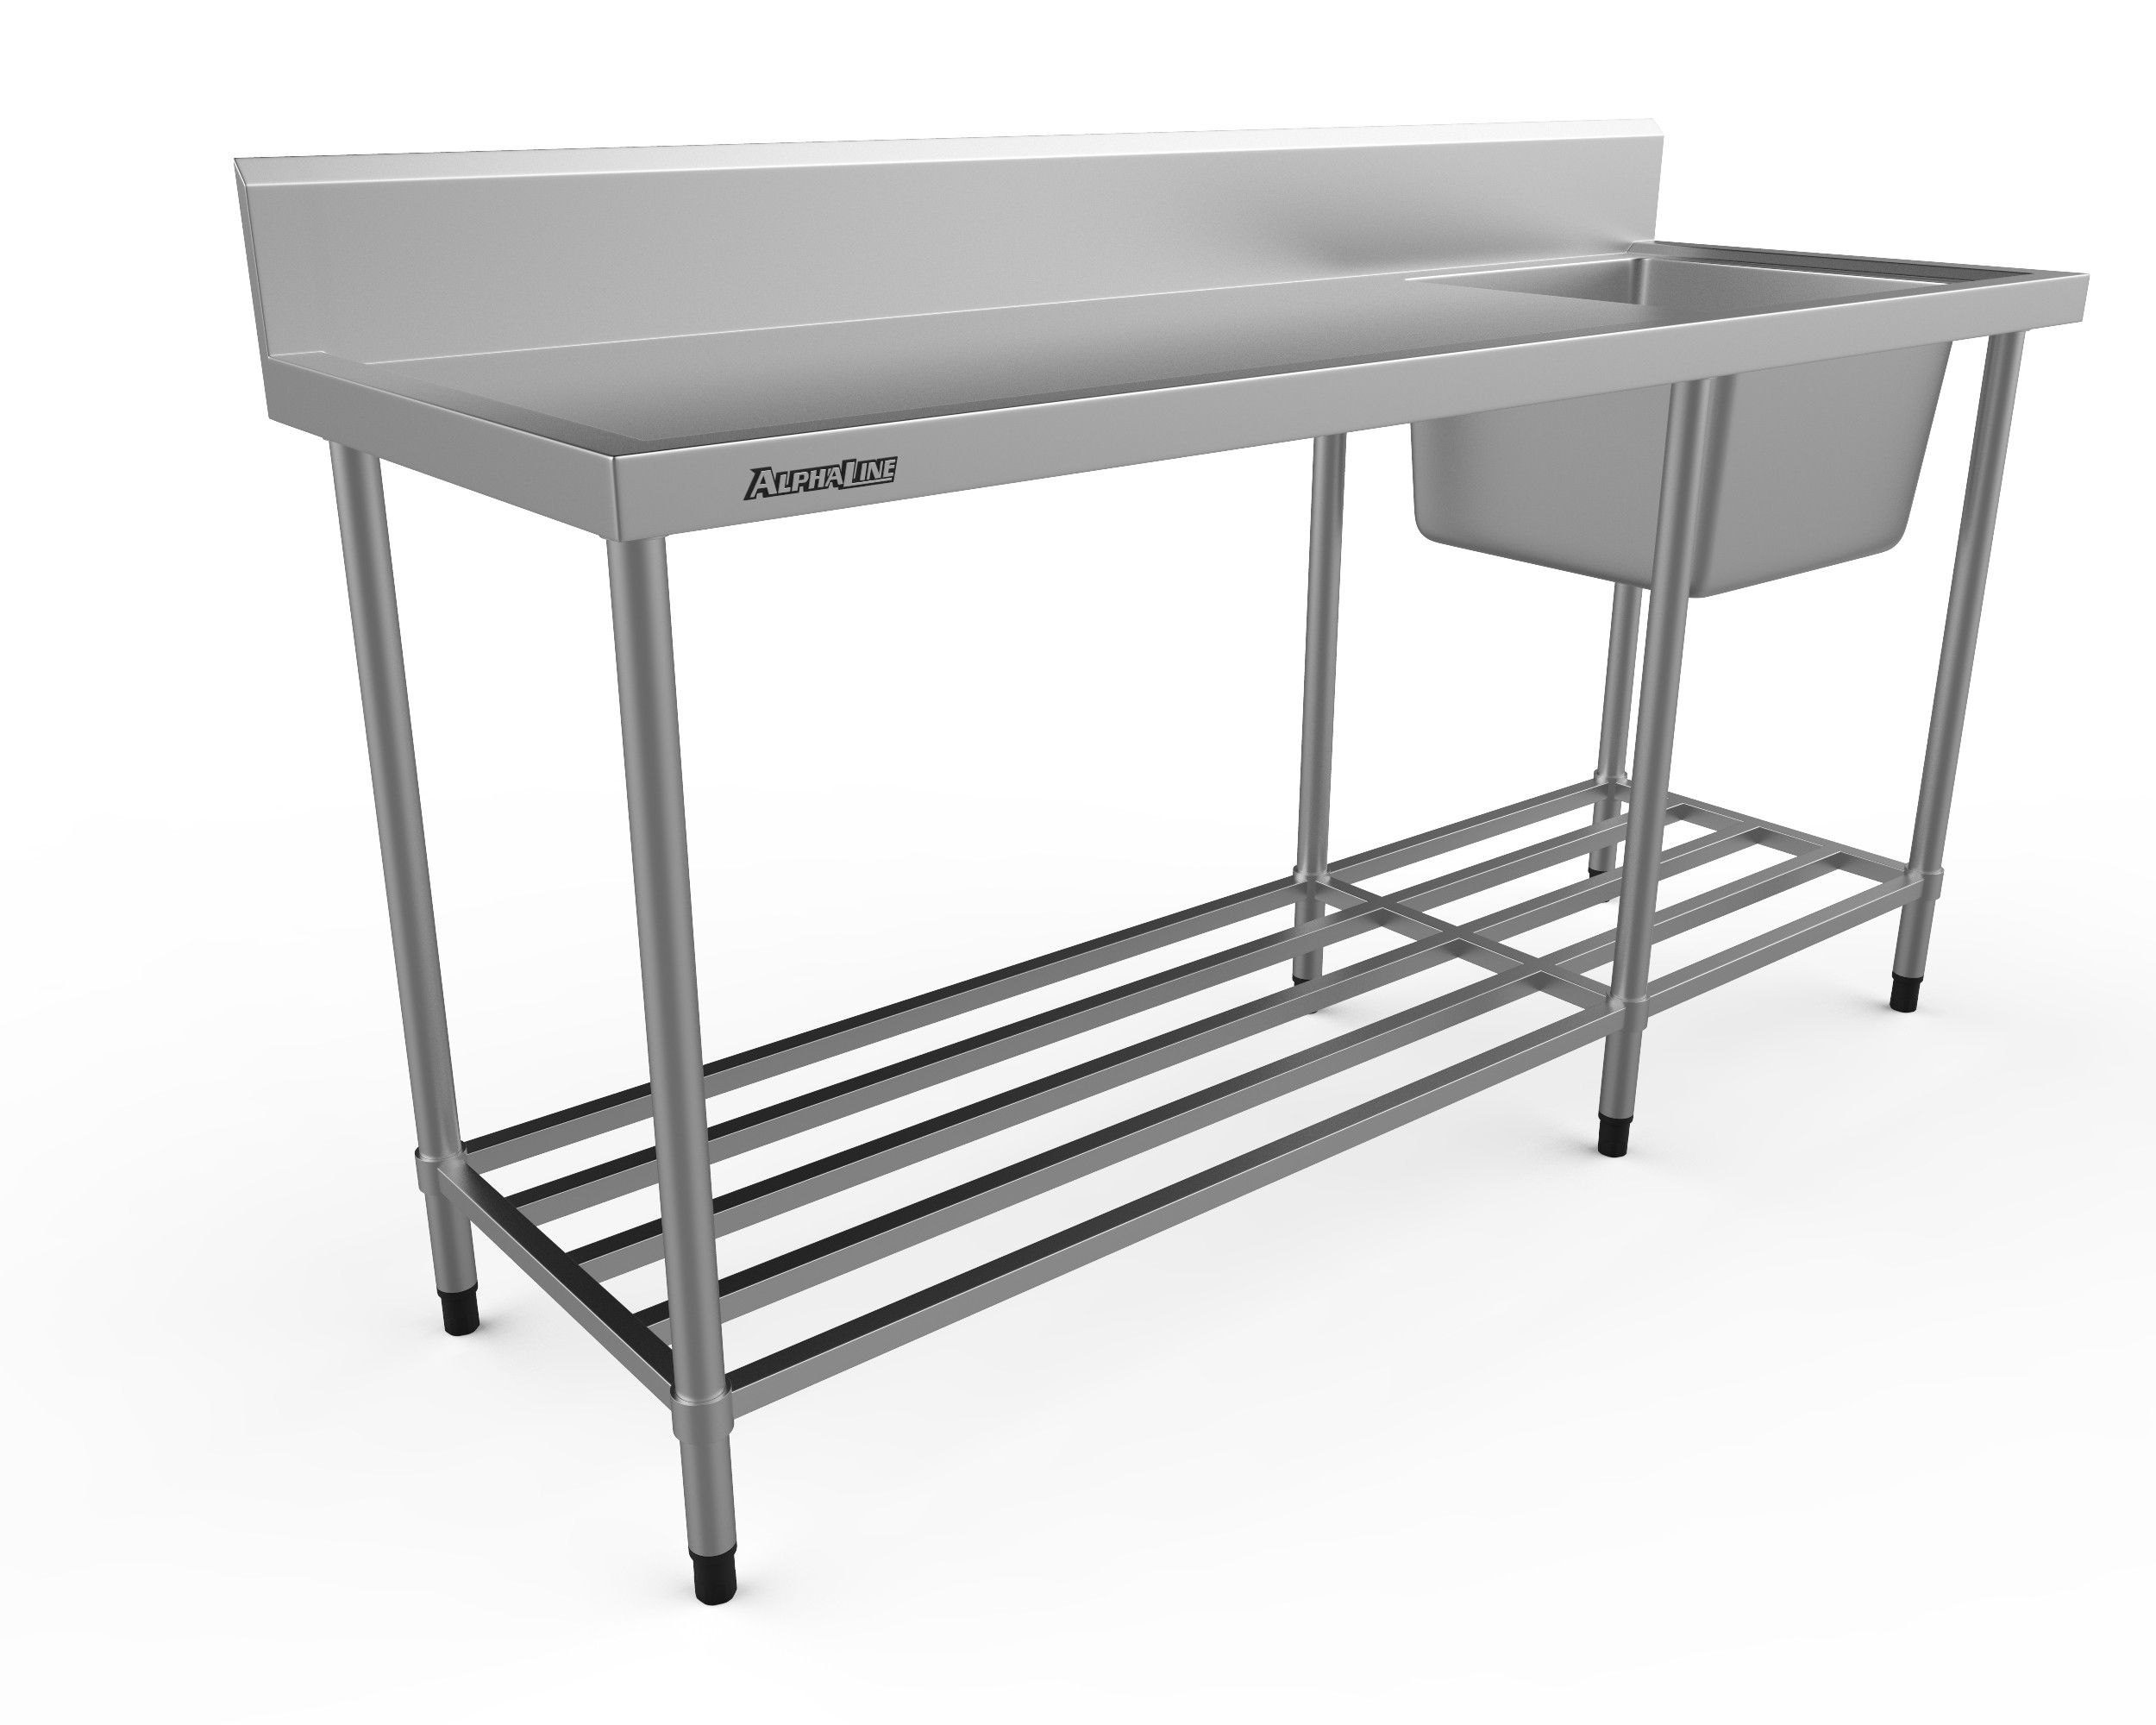 Stainless Steel Sink Bench - 1800 x 600 Right Bowl - XS1-60180R